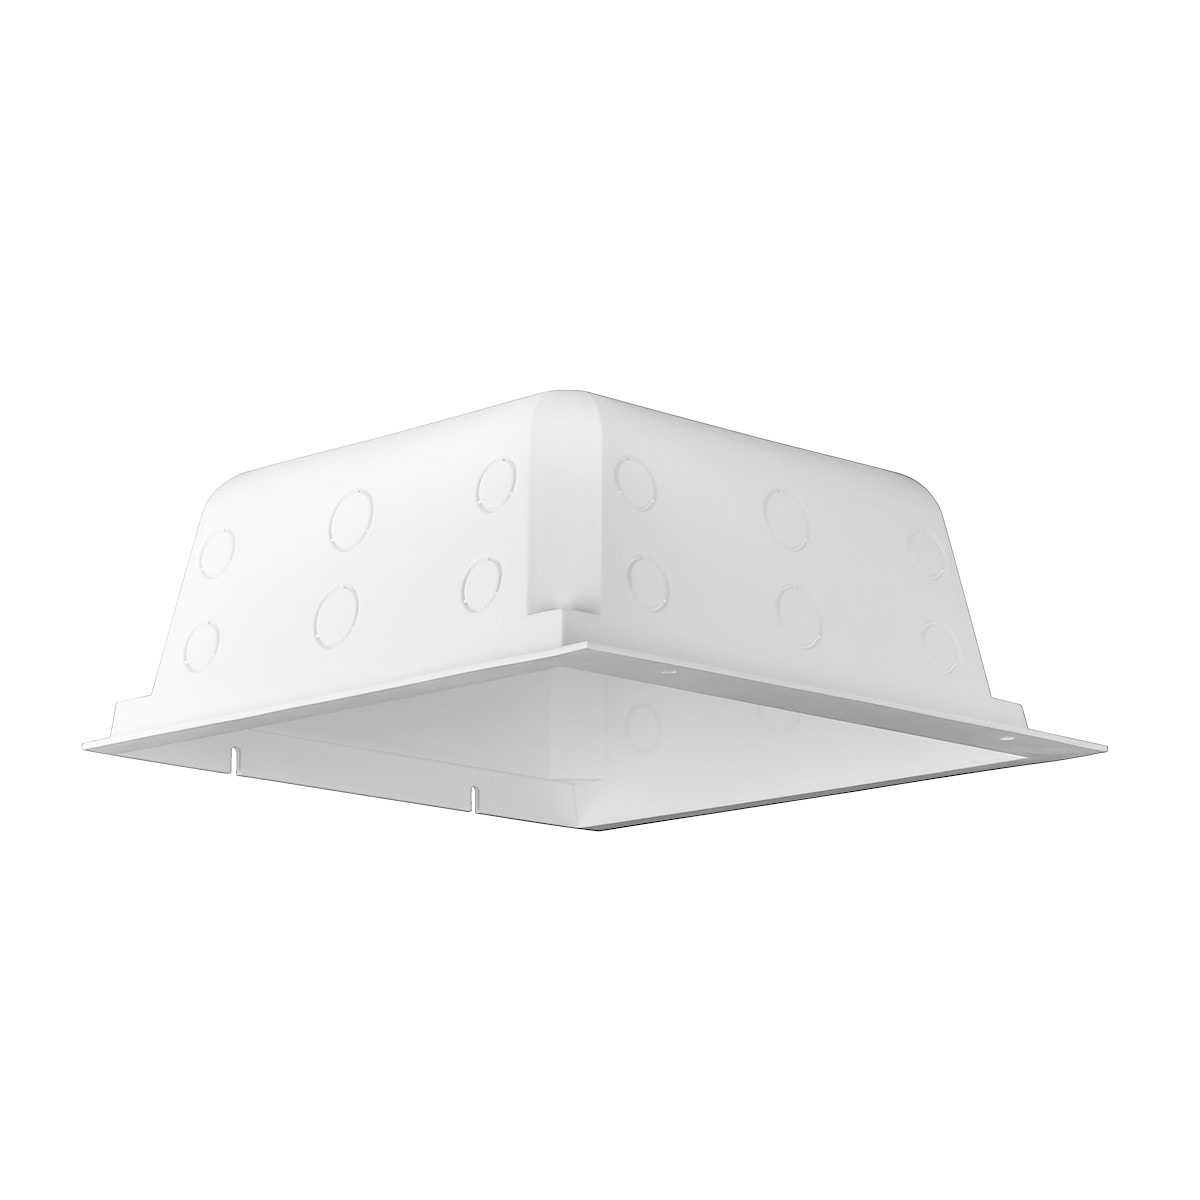 Monteringsboks for LED-downlights